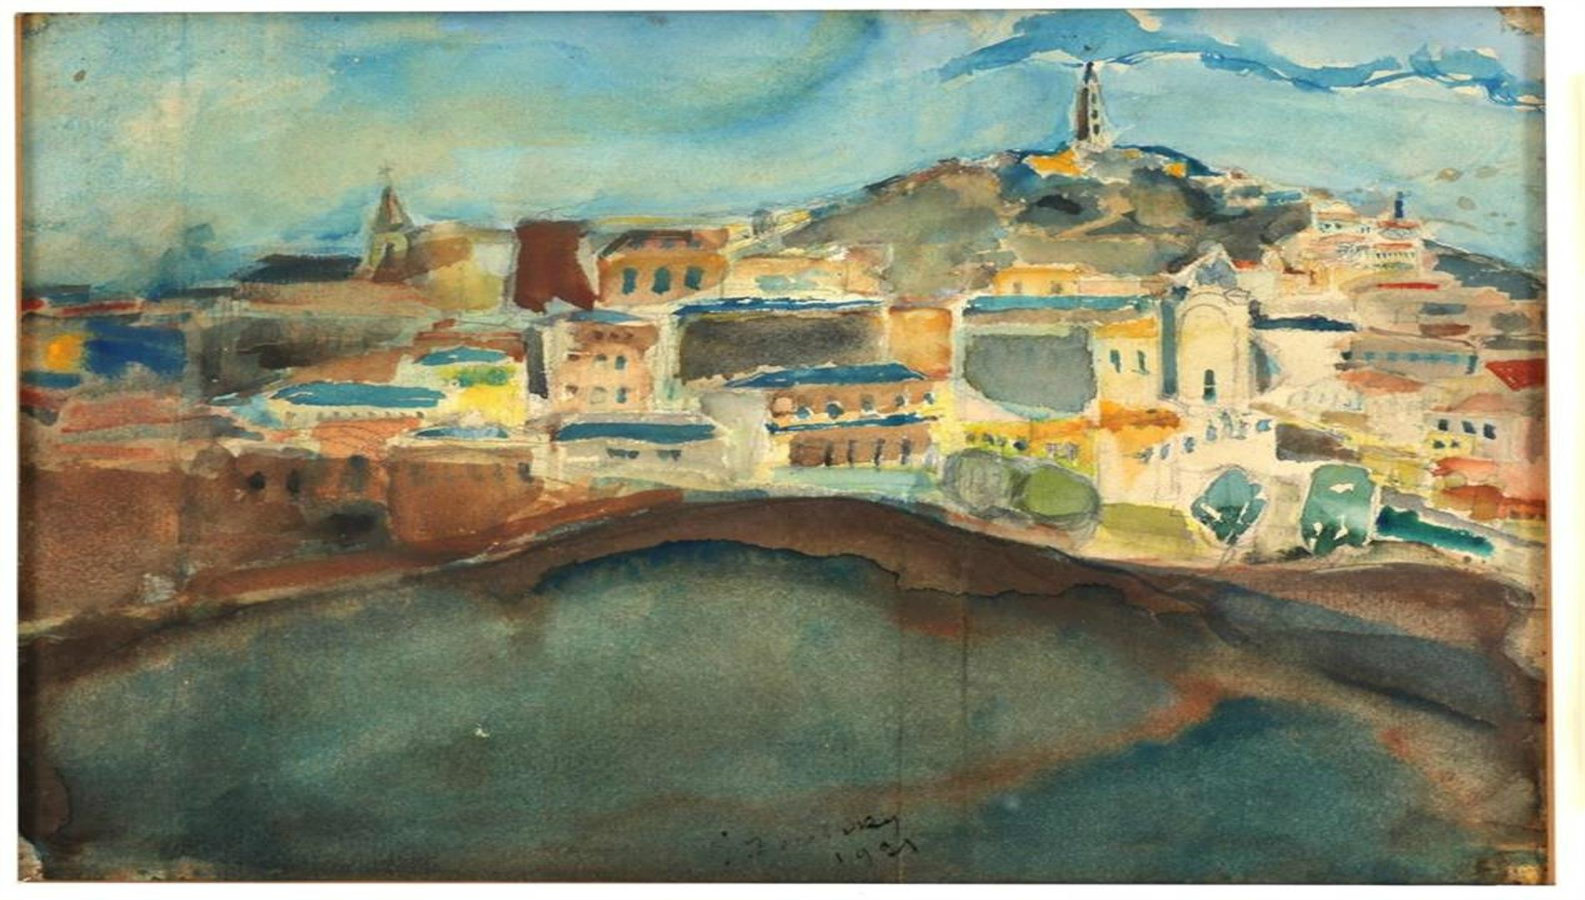 """Jerusalem Landscape 1925-27"" by Yosef Zaritsky is housed at The Bar-David Museum of Art and Judaica on Kibbutz Baram in the Galilee. Photo by Ron Erde"